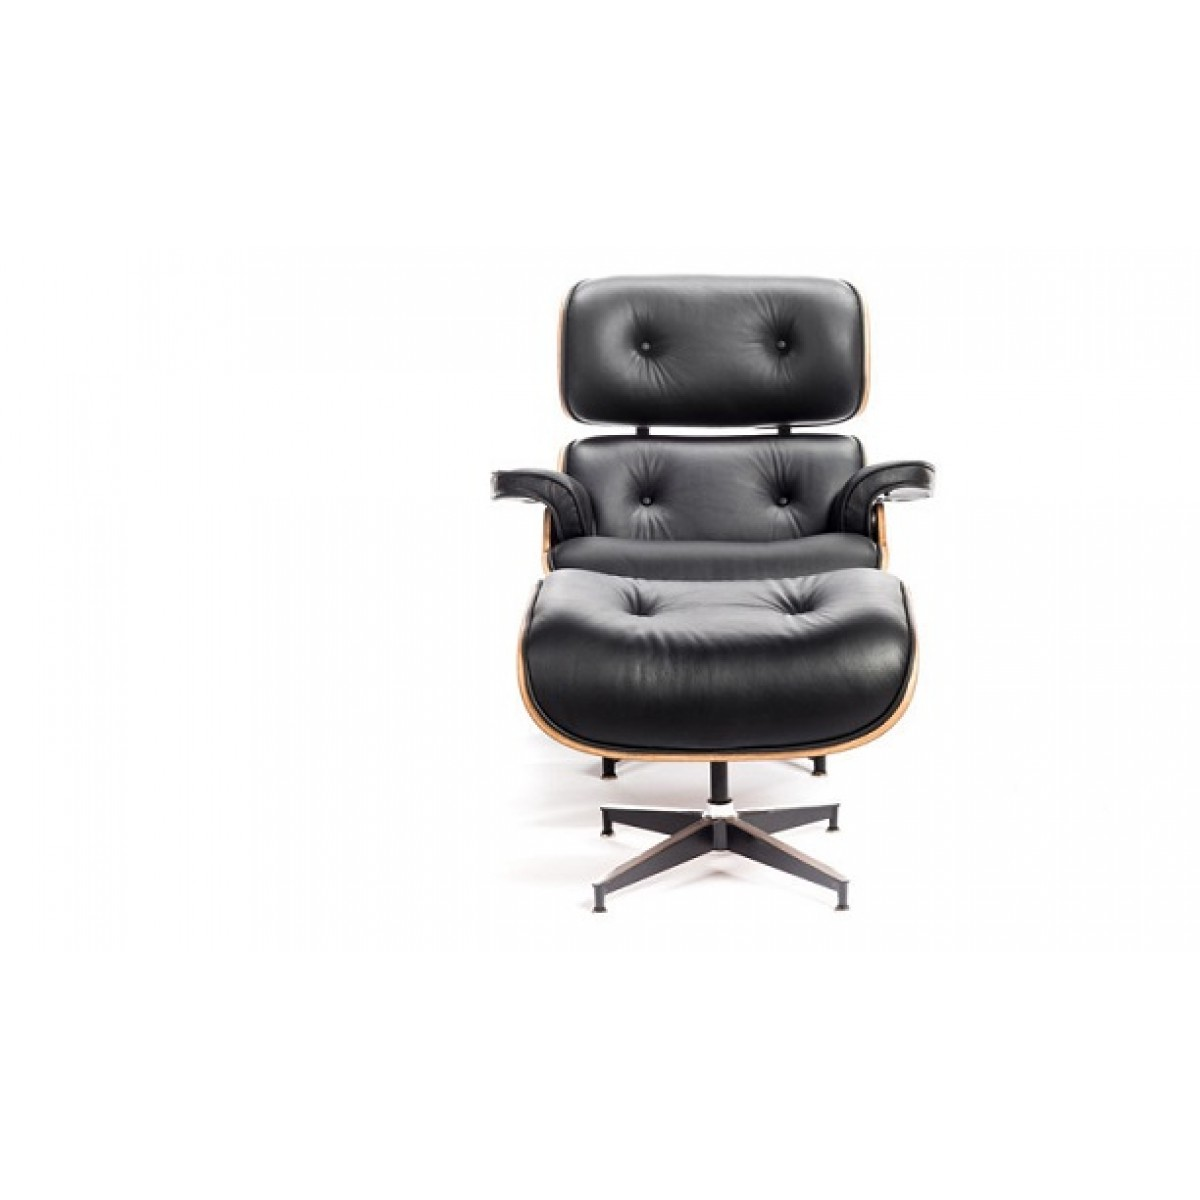 Eames style lounge chair and ottoman black leather oak for Eames chair replica deutschland